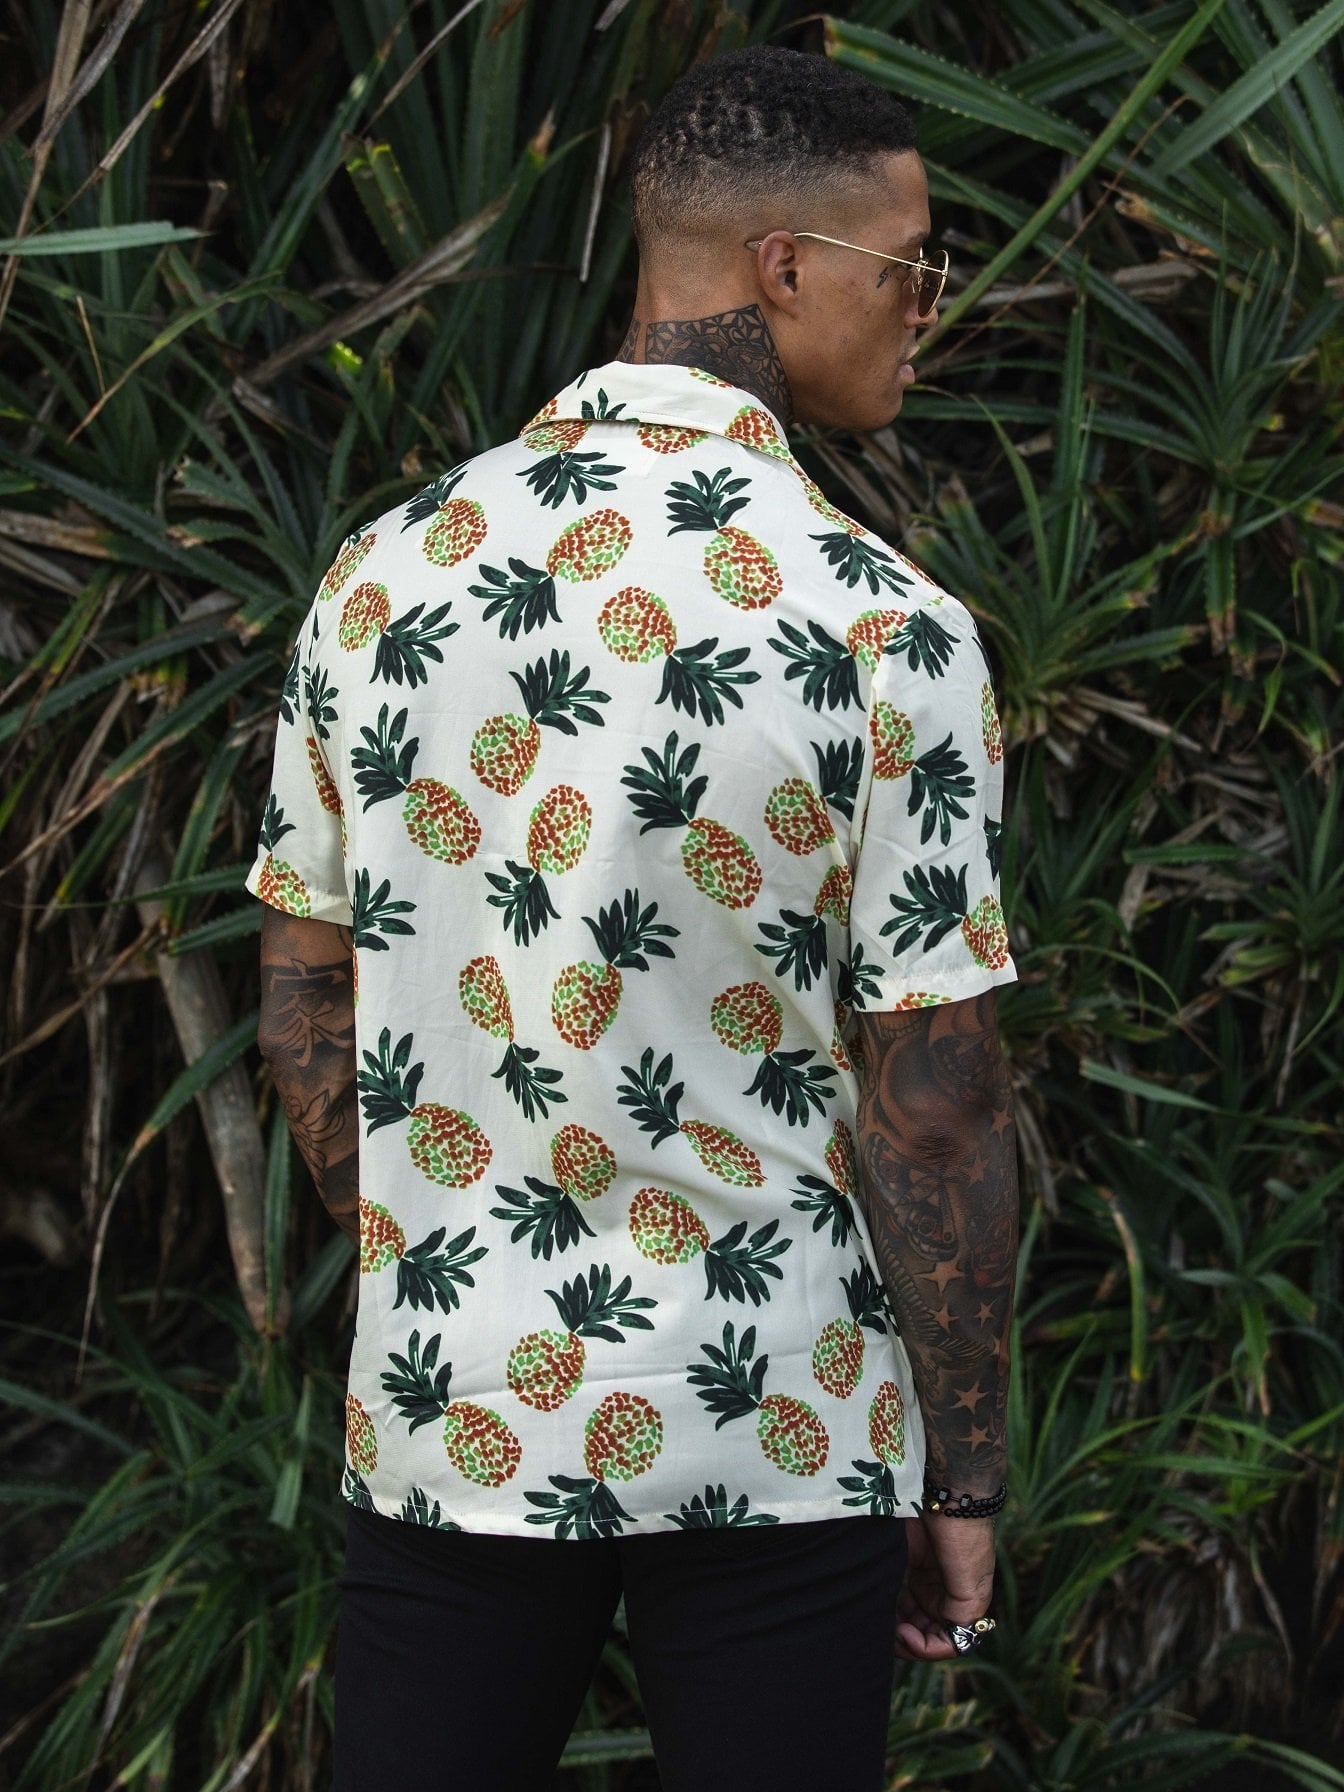 MIAMI RETRO REVERE COLLAR SHIRT IN TROPICAL PINEAPPLE PRINT - Liquor N Poker  Liquor N Poker